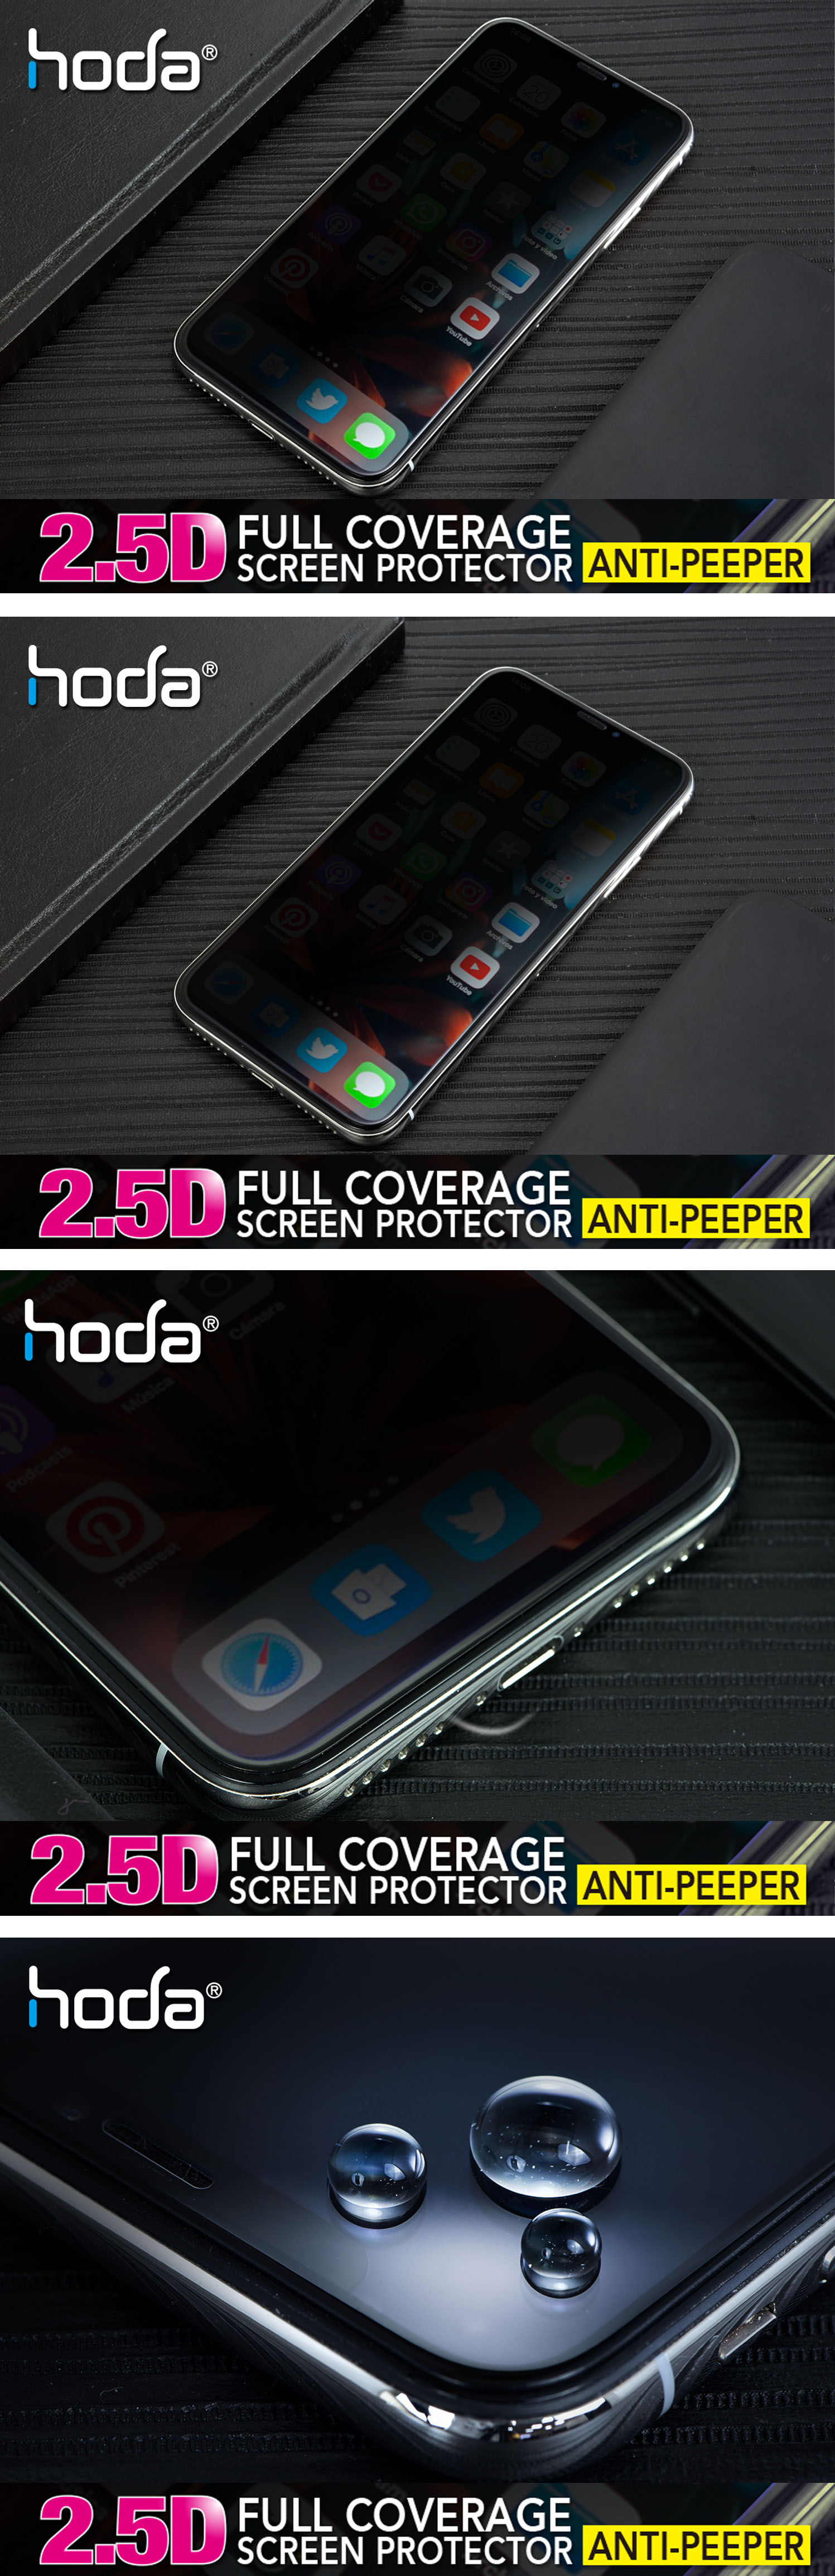 /hoda/4713381514641/1-DES--fx-hoda-tempered-glass-iphone-11-compatible-iphone-xr-0.33mm-full-coverage-anti-peeper-privacy-screen-protector-black-color-4713381514641-malaysia-authorised-retailer